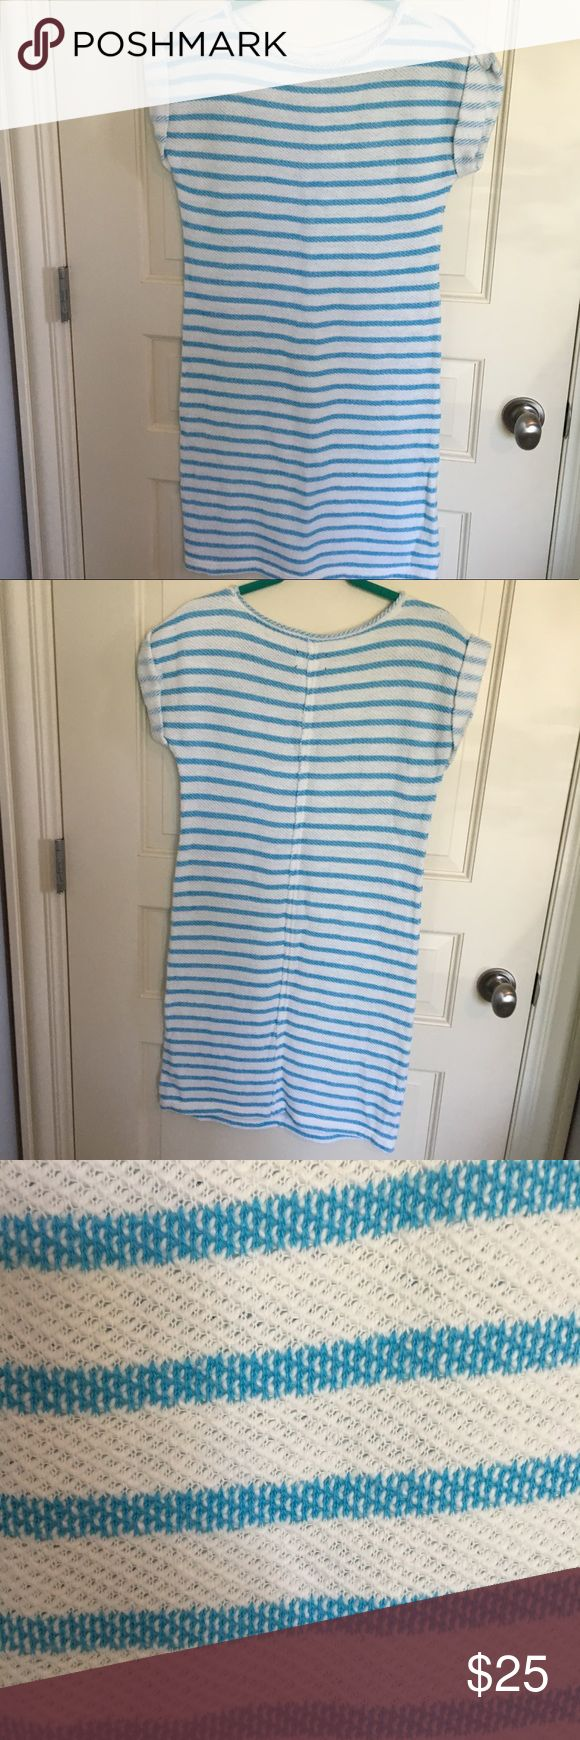 Lou & Grey blue and white striped dress XS Lou & Grey dress. The softest and most comfortable dress ever!! Perfect for the beach or any warm fall day. Lou & Grey Dresses